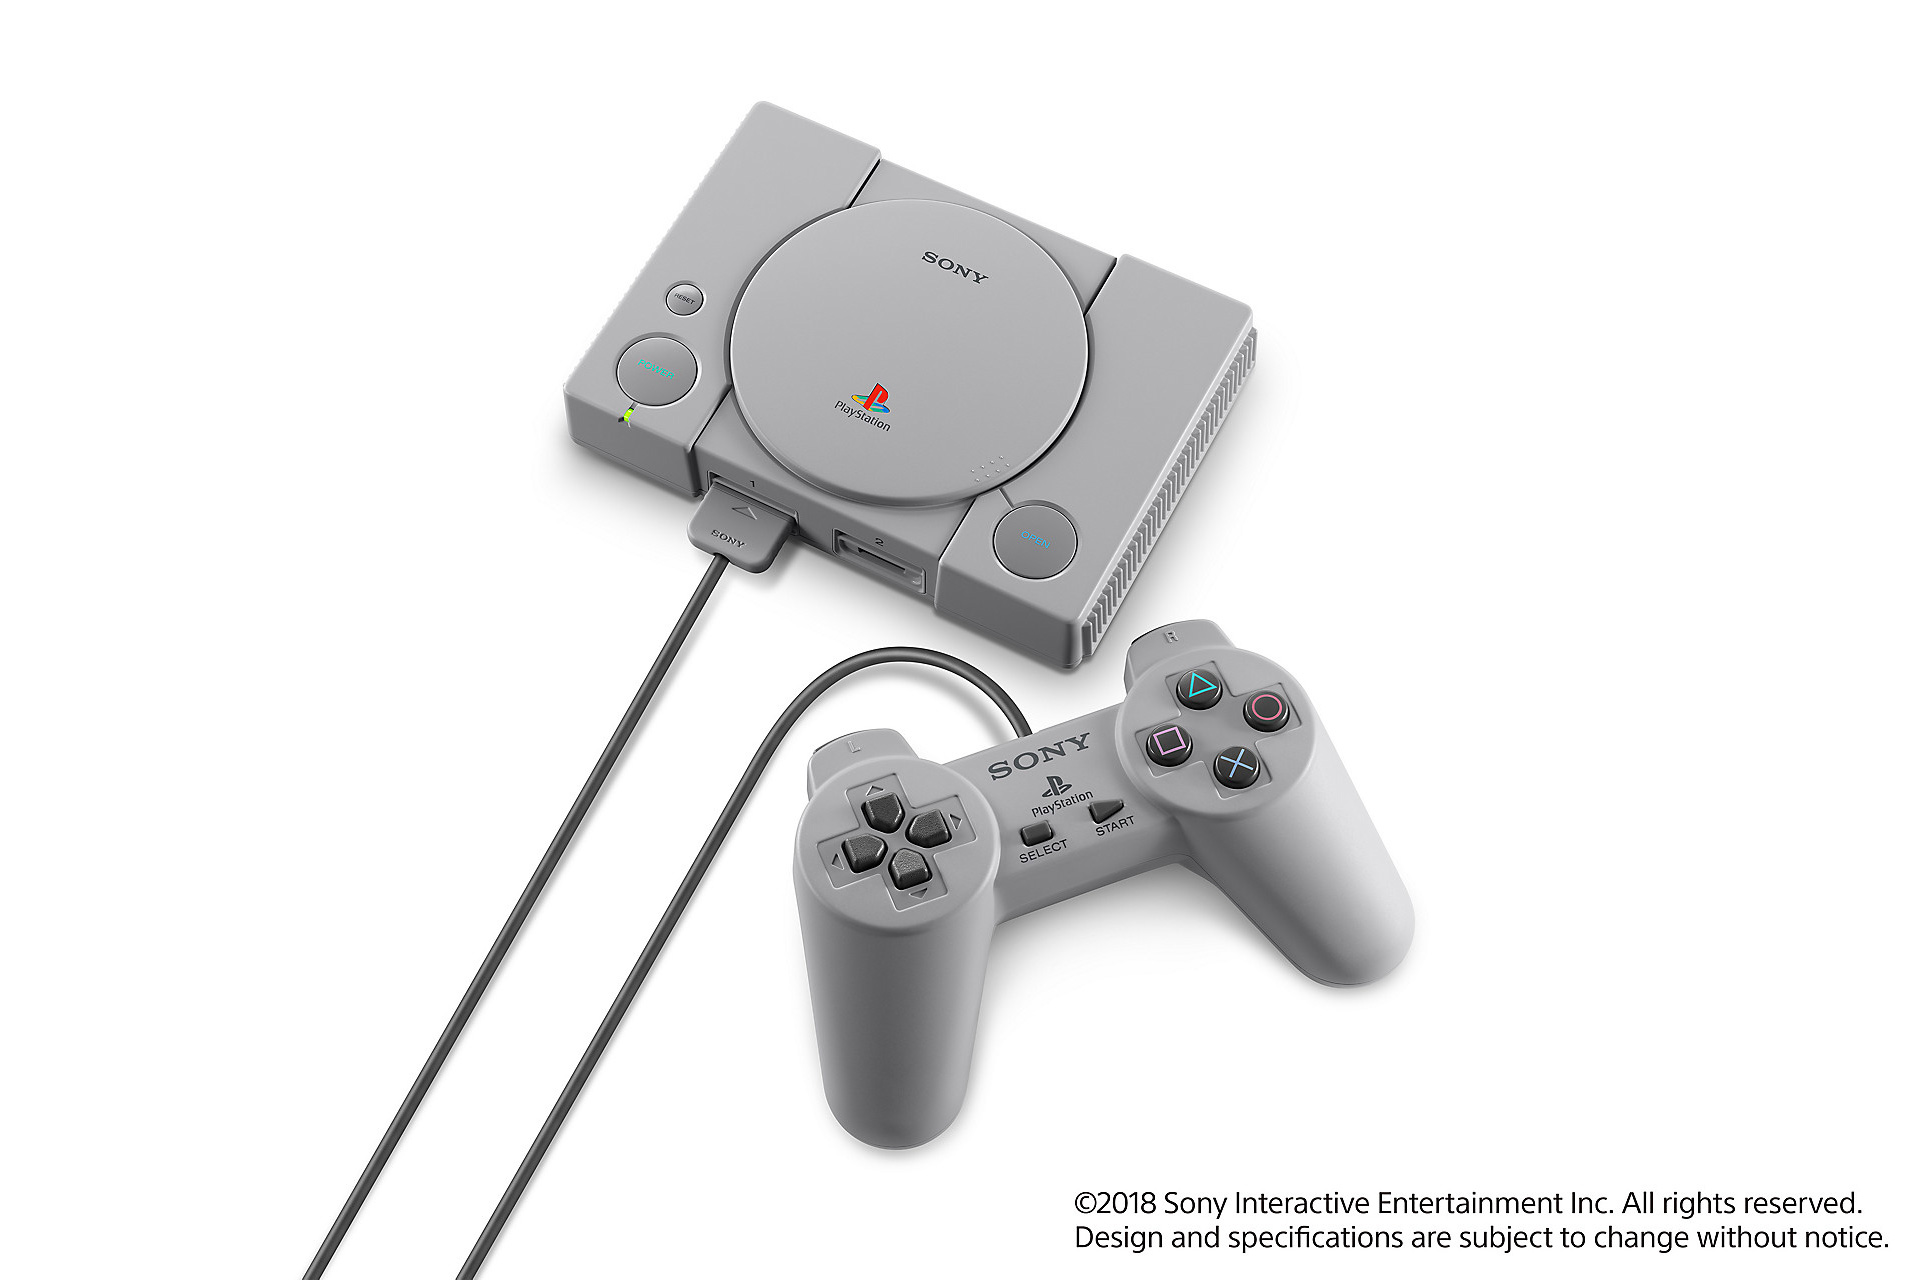 PlayStation Classic, a $100 mini PS1 with 20 games, coming in